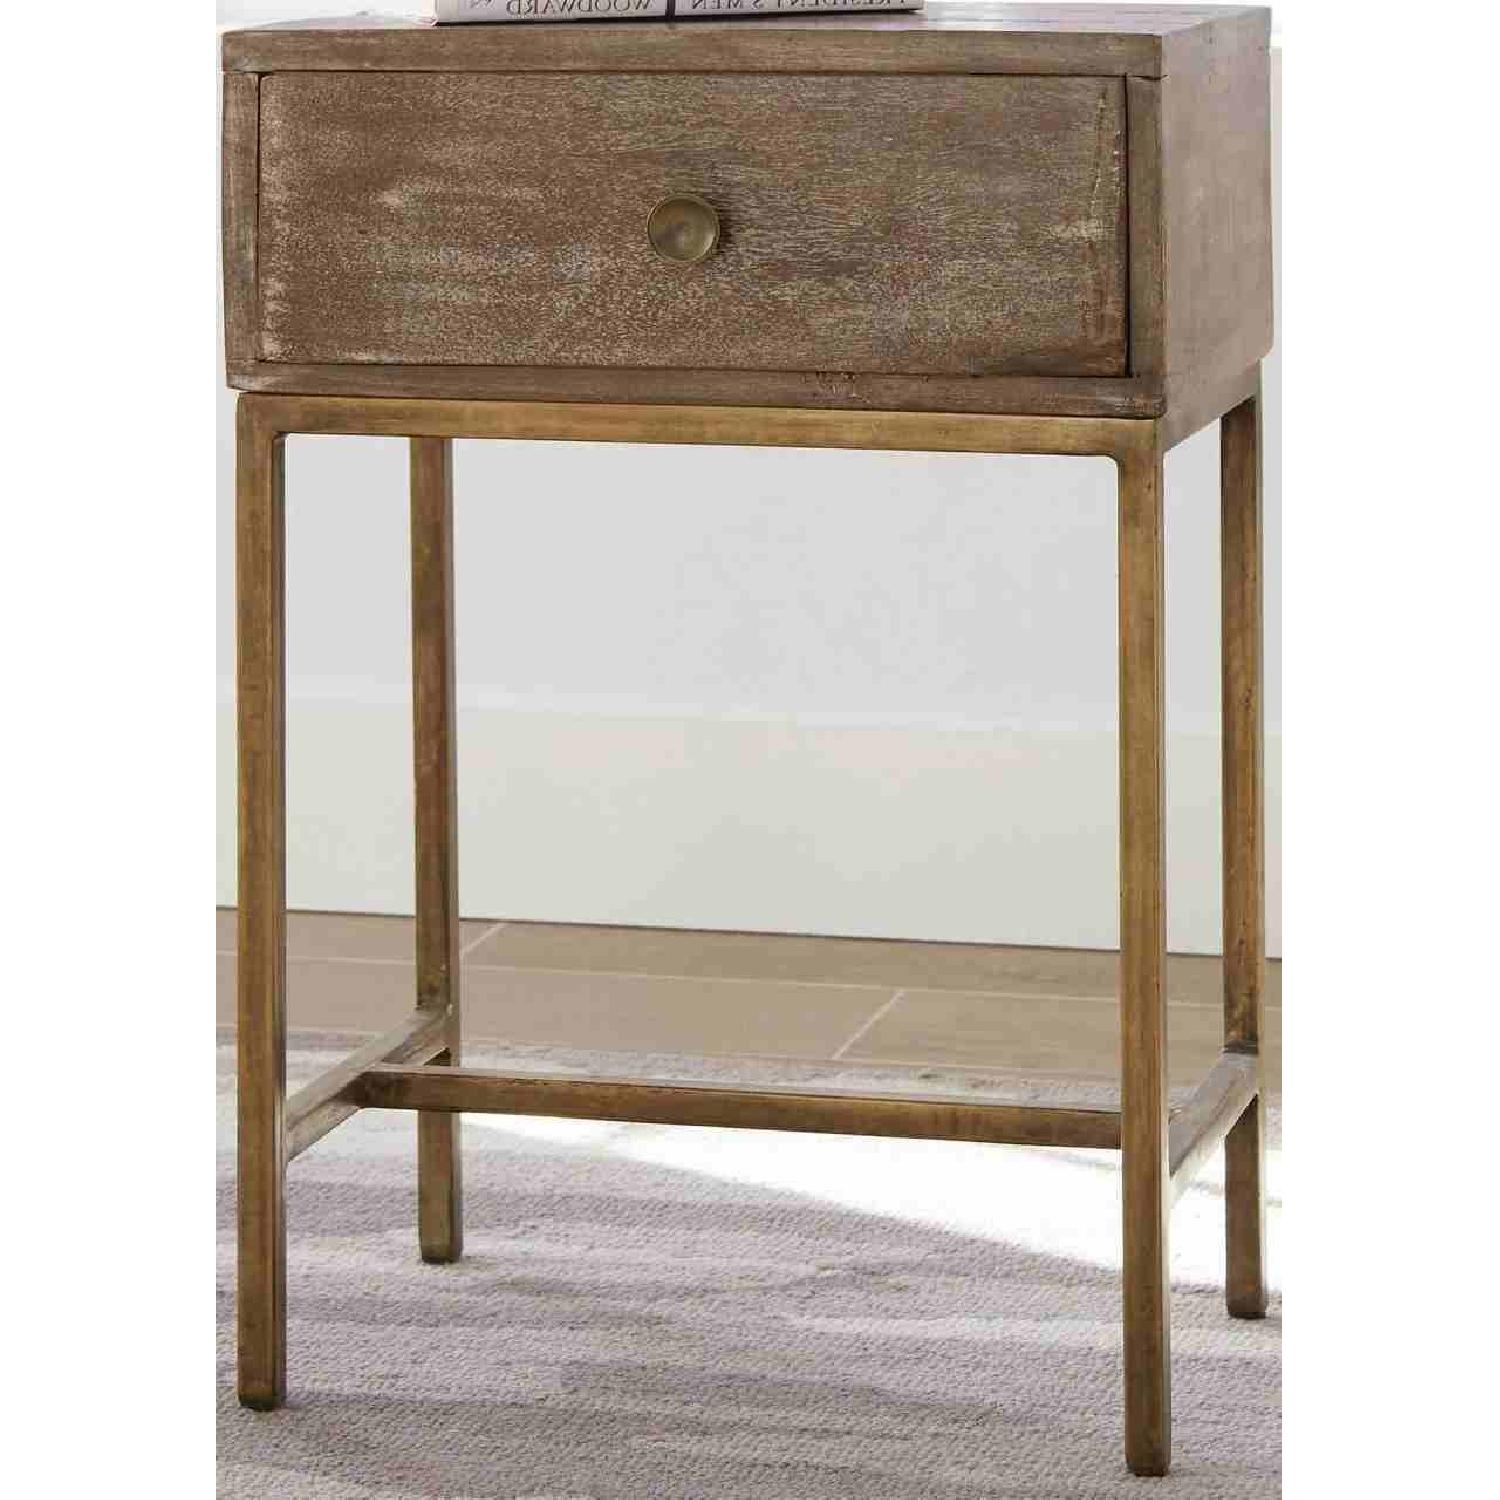 Accent Table w/ Drawer in Weathered Natural & Antique Gold - image-1